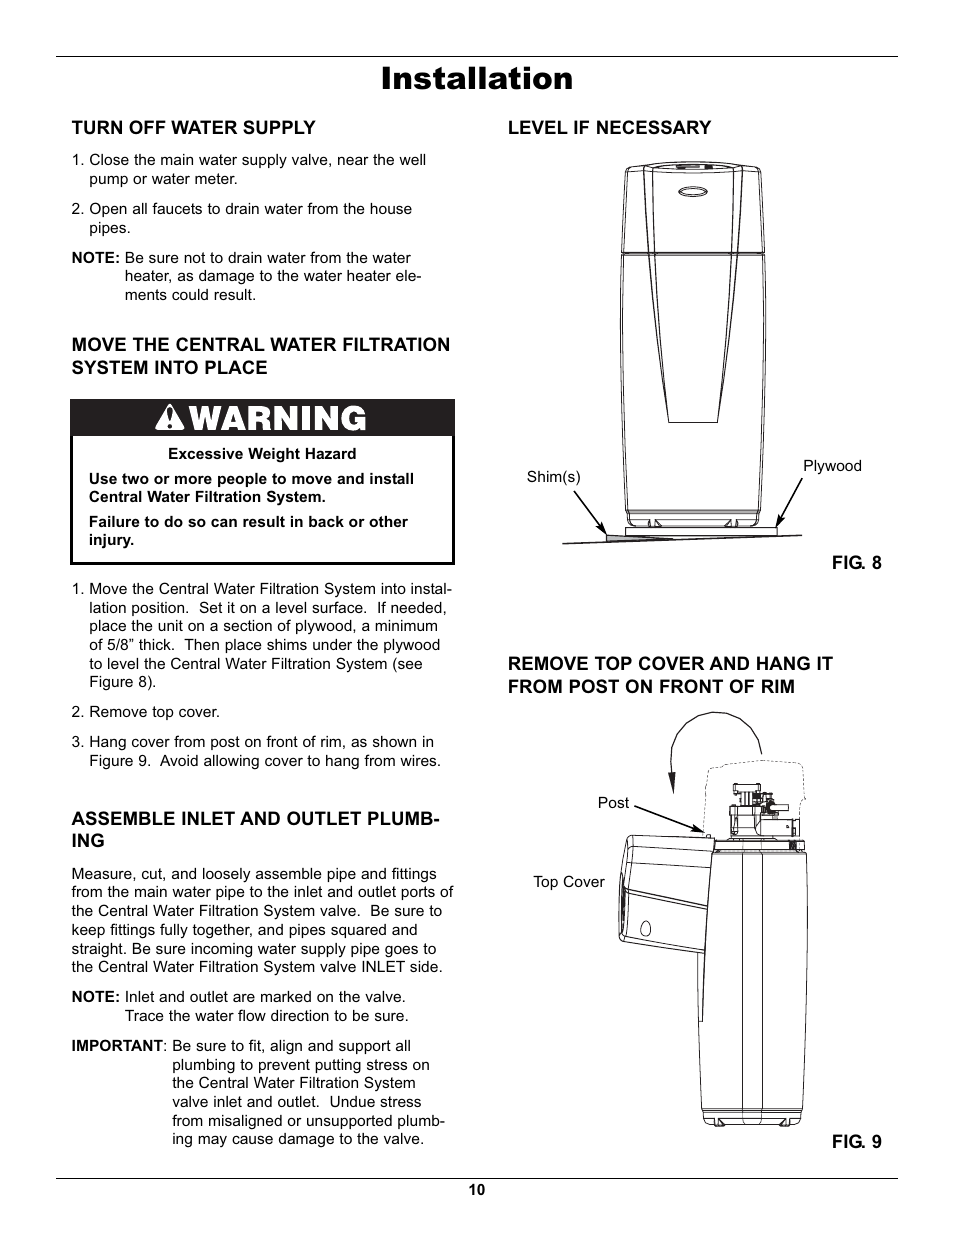 Installation Whirlpool Whelj1 User Manual Page 10 27